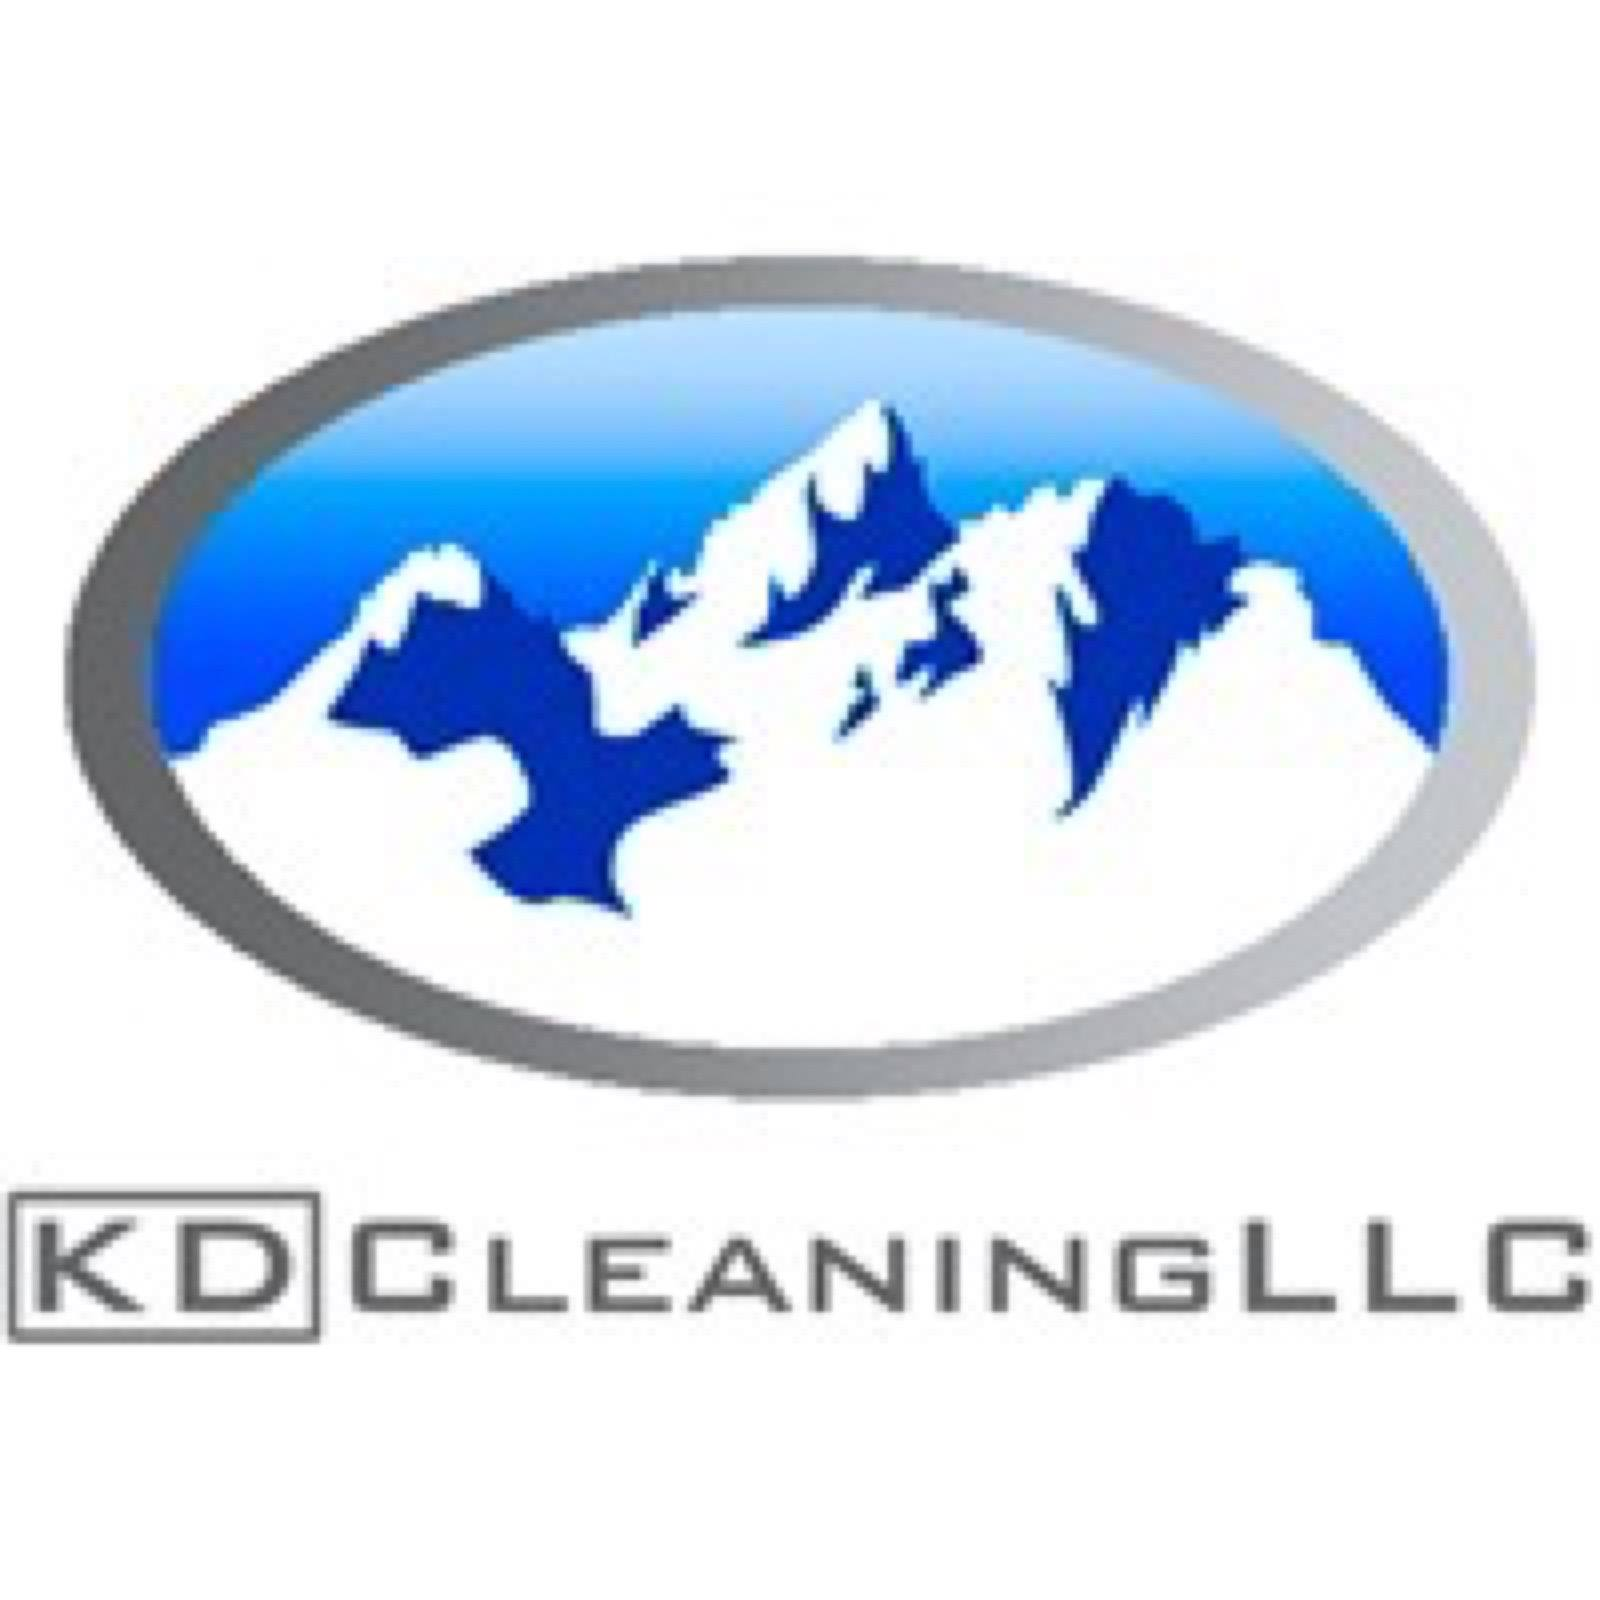 KD Cleaning LLC, a New Mexico based window washing company